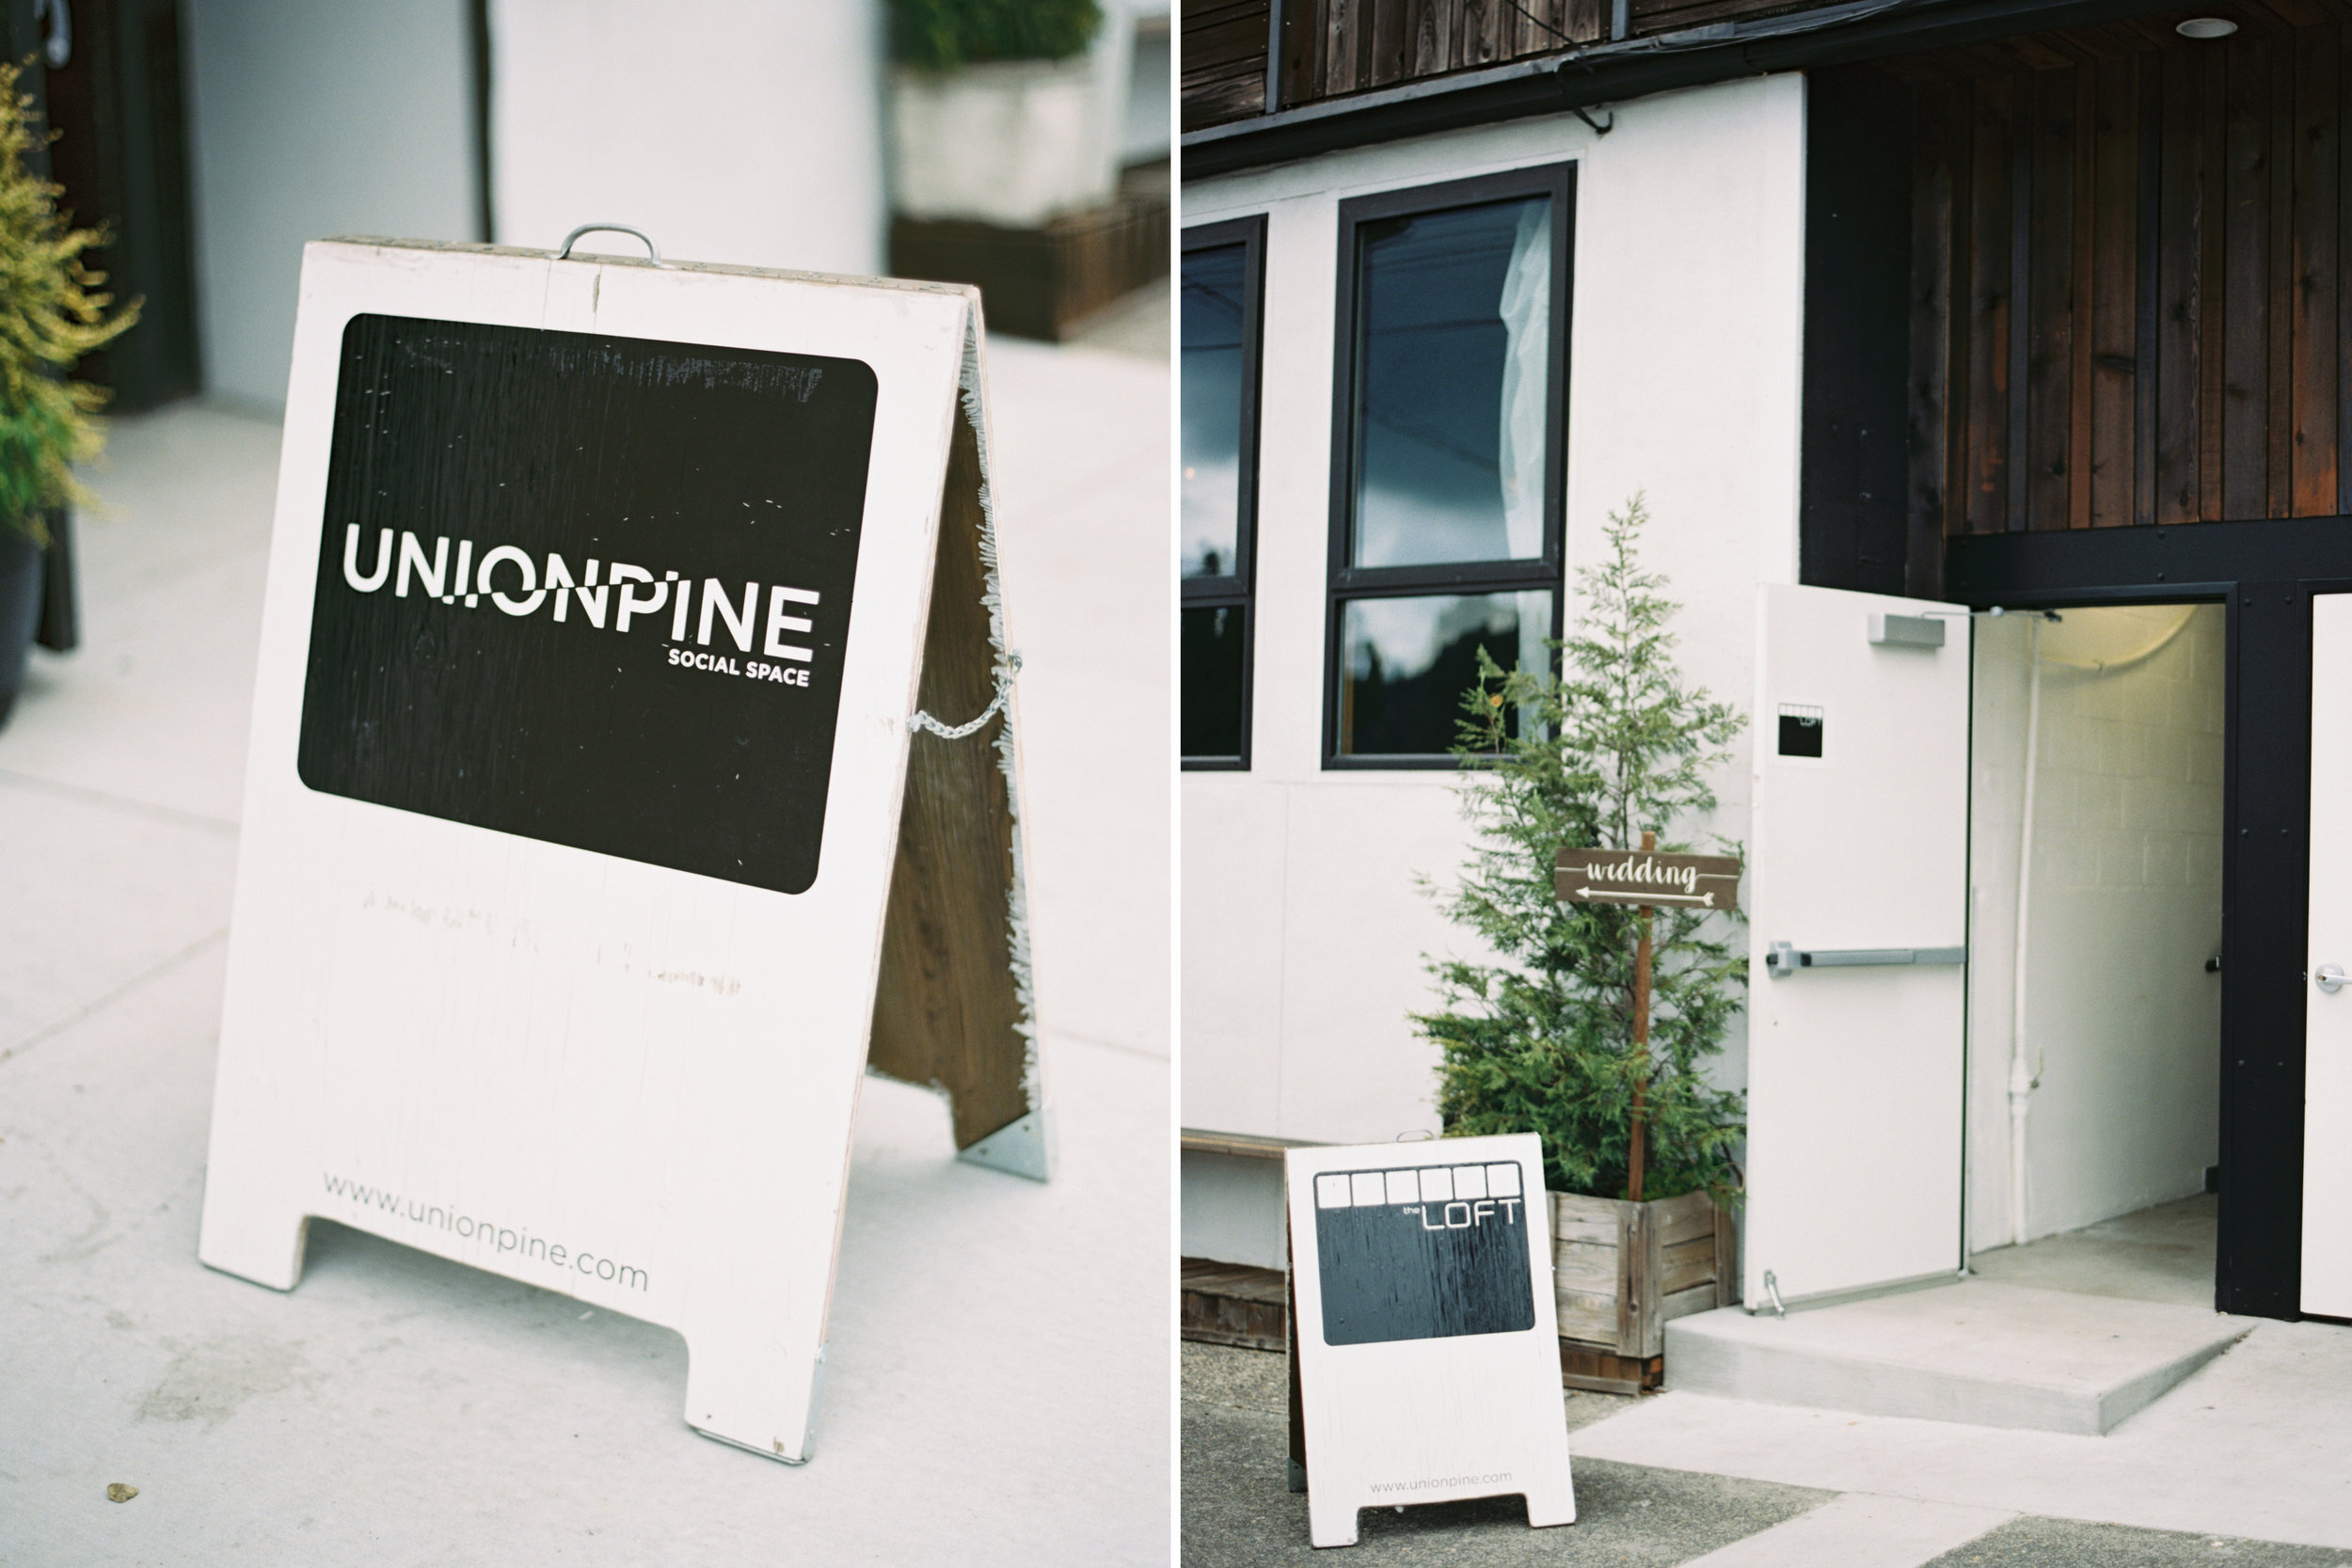 +SPLIT IMAGE_outlive+creative+contax645+film+wedding+union+pine+portland+oregon+sign+jpg.jpg